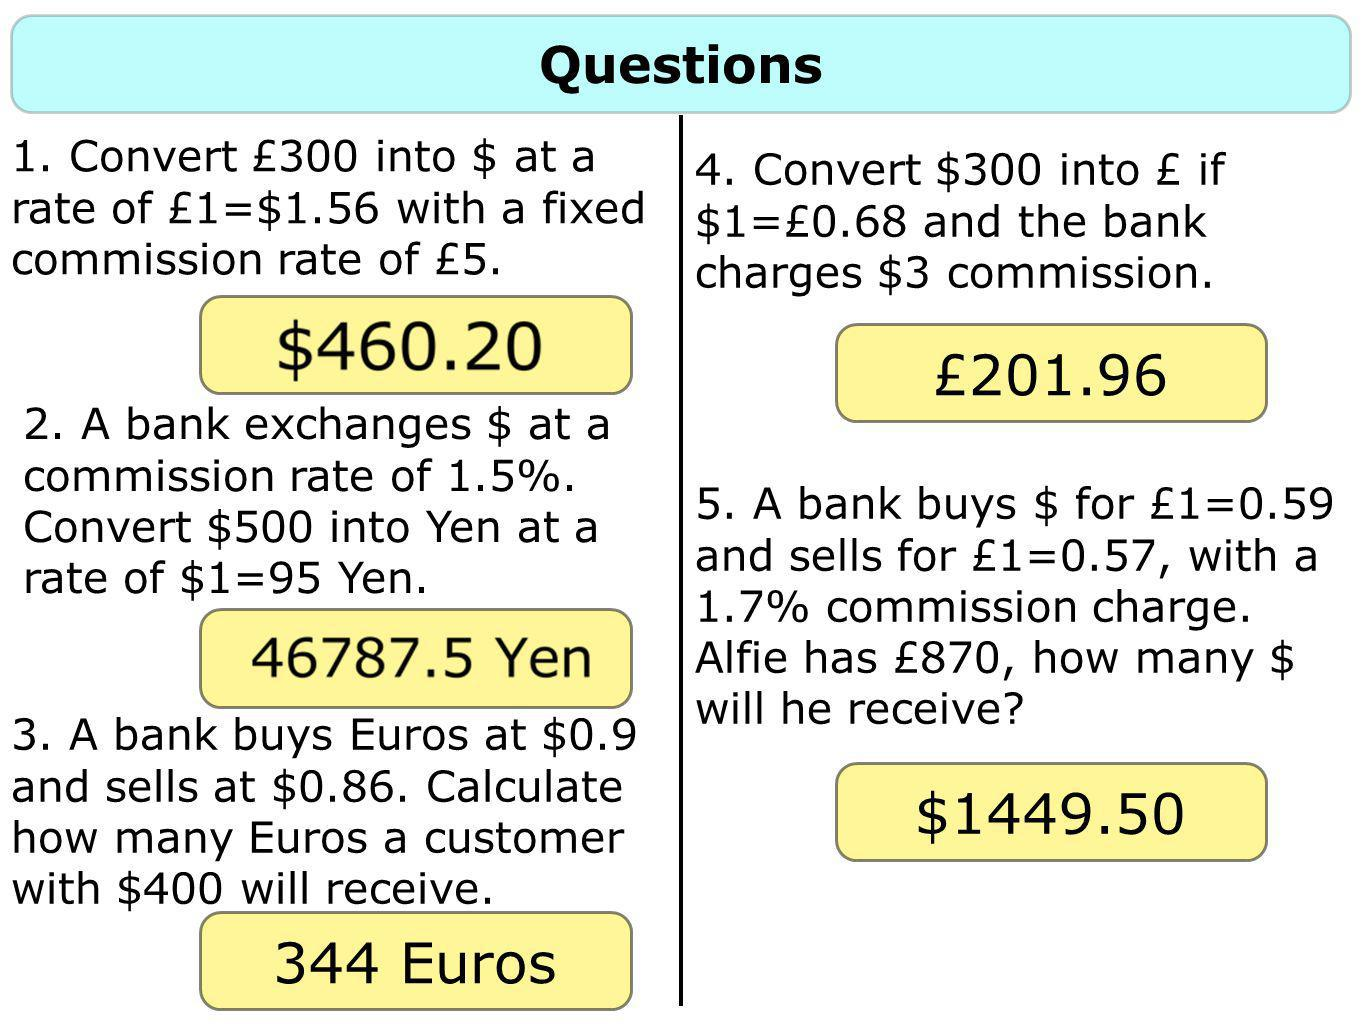 Questions 1. Convert £300 into $ at a rate of £1=$1.56 with a fixed commission rate of £5.